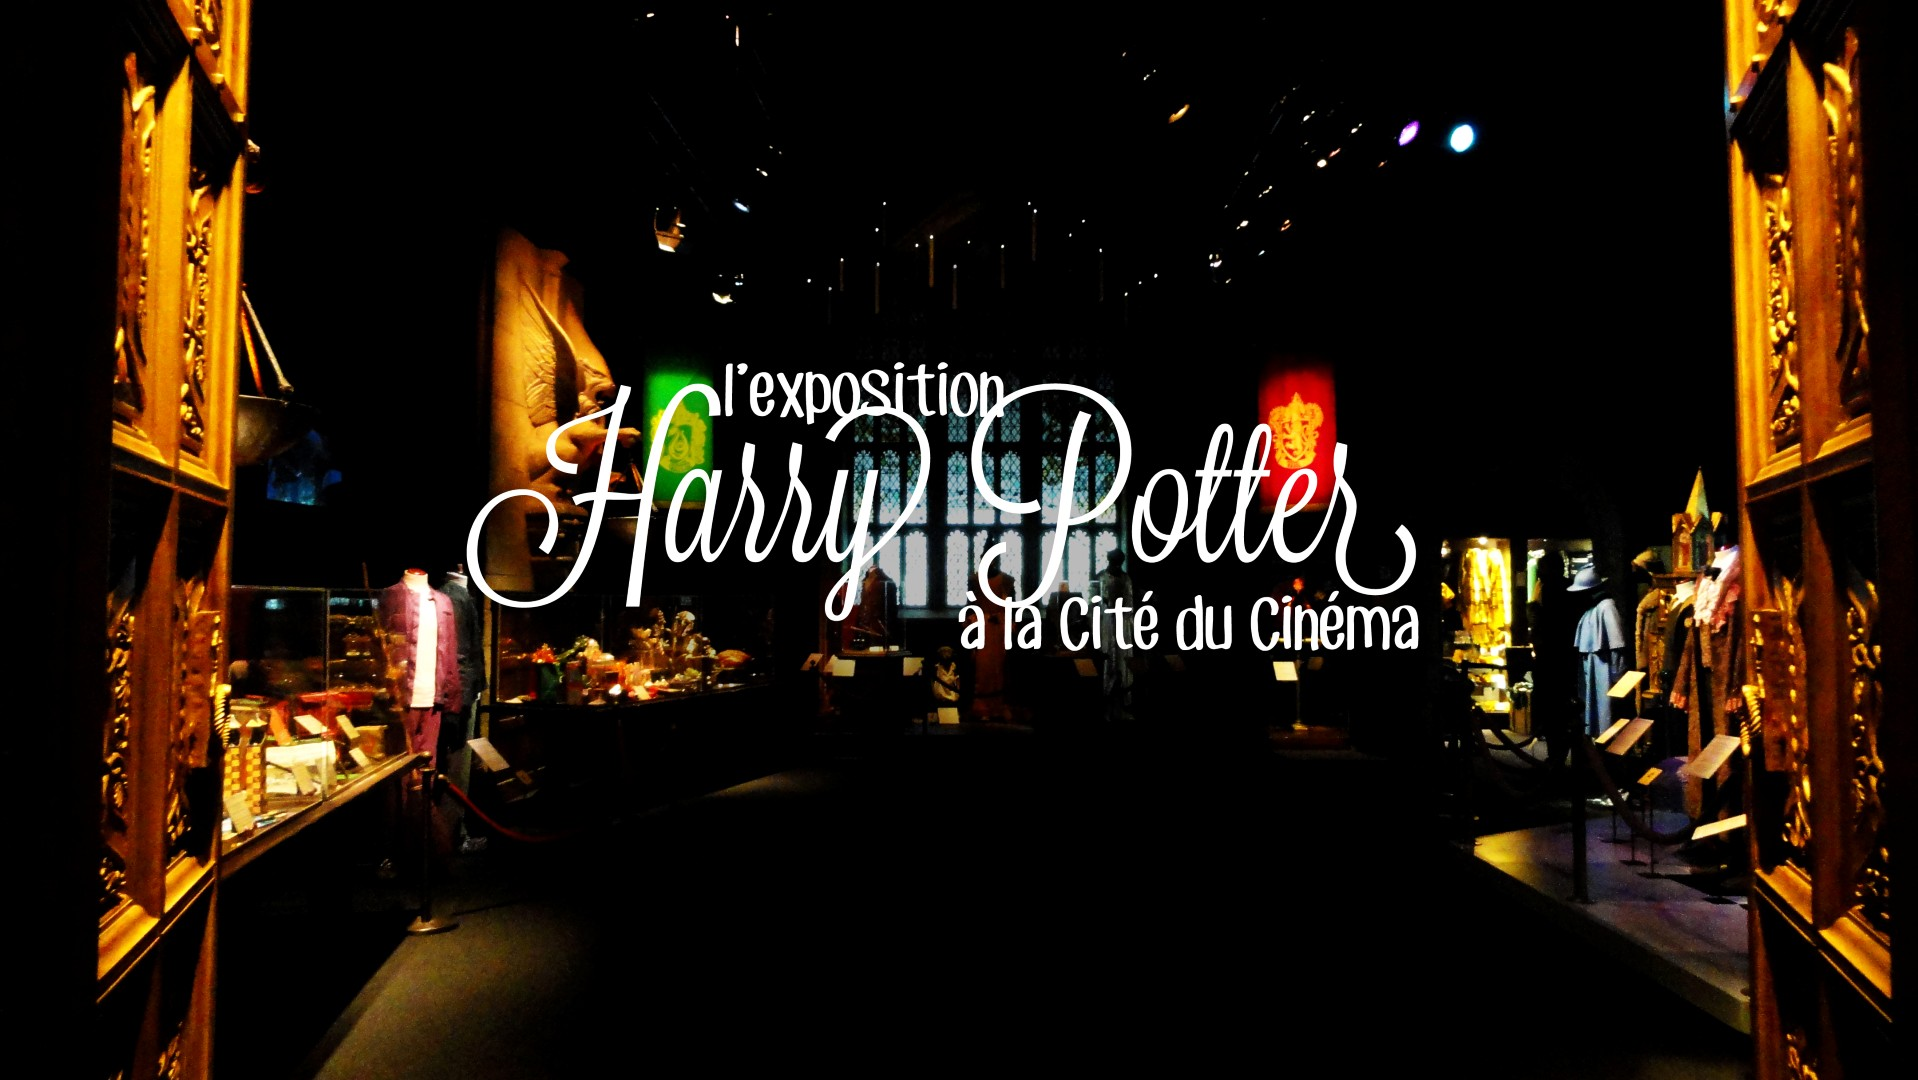 20150430_expo_harry_potter-3 (Large)